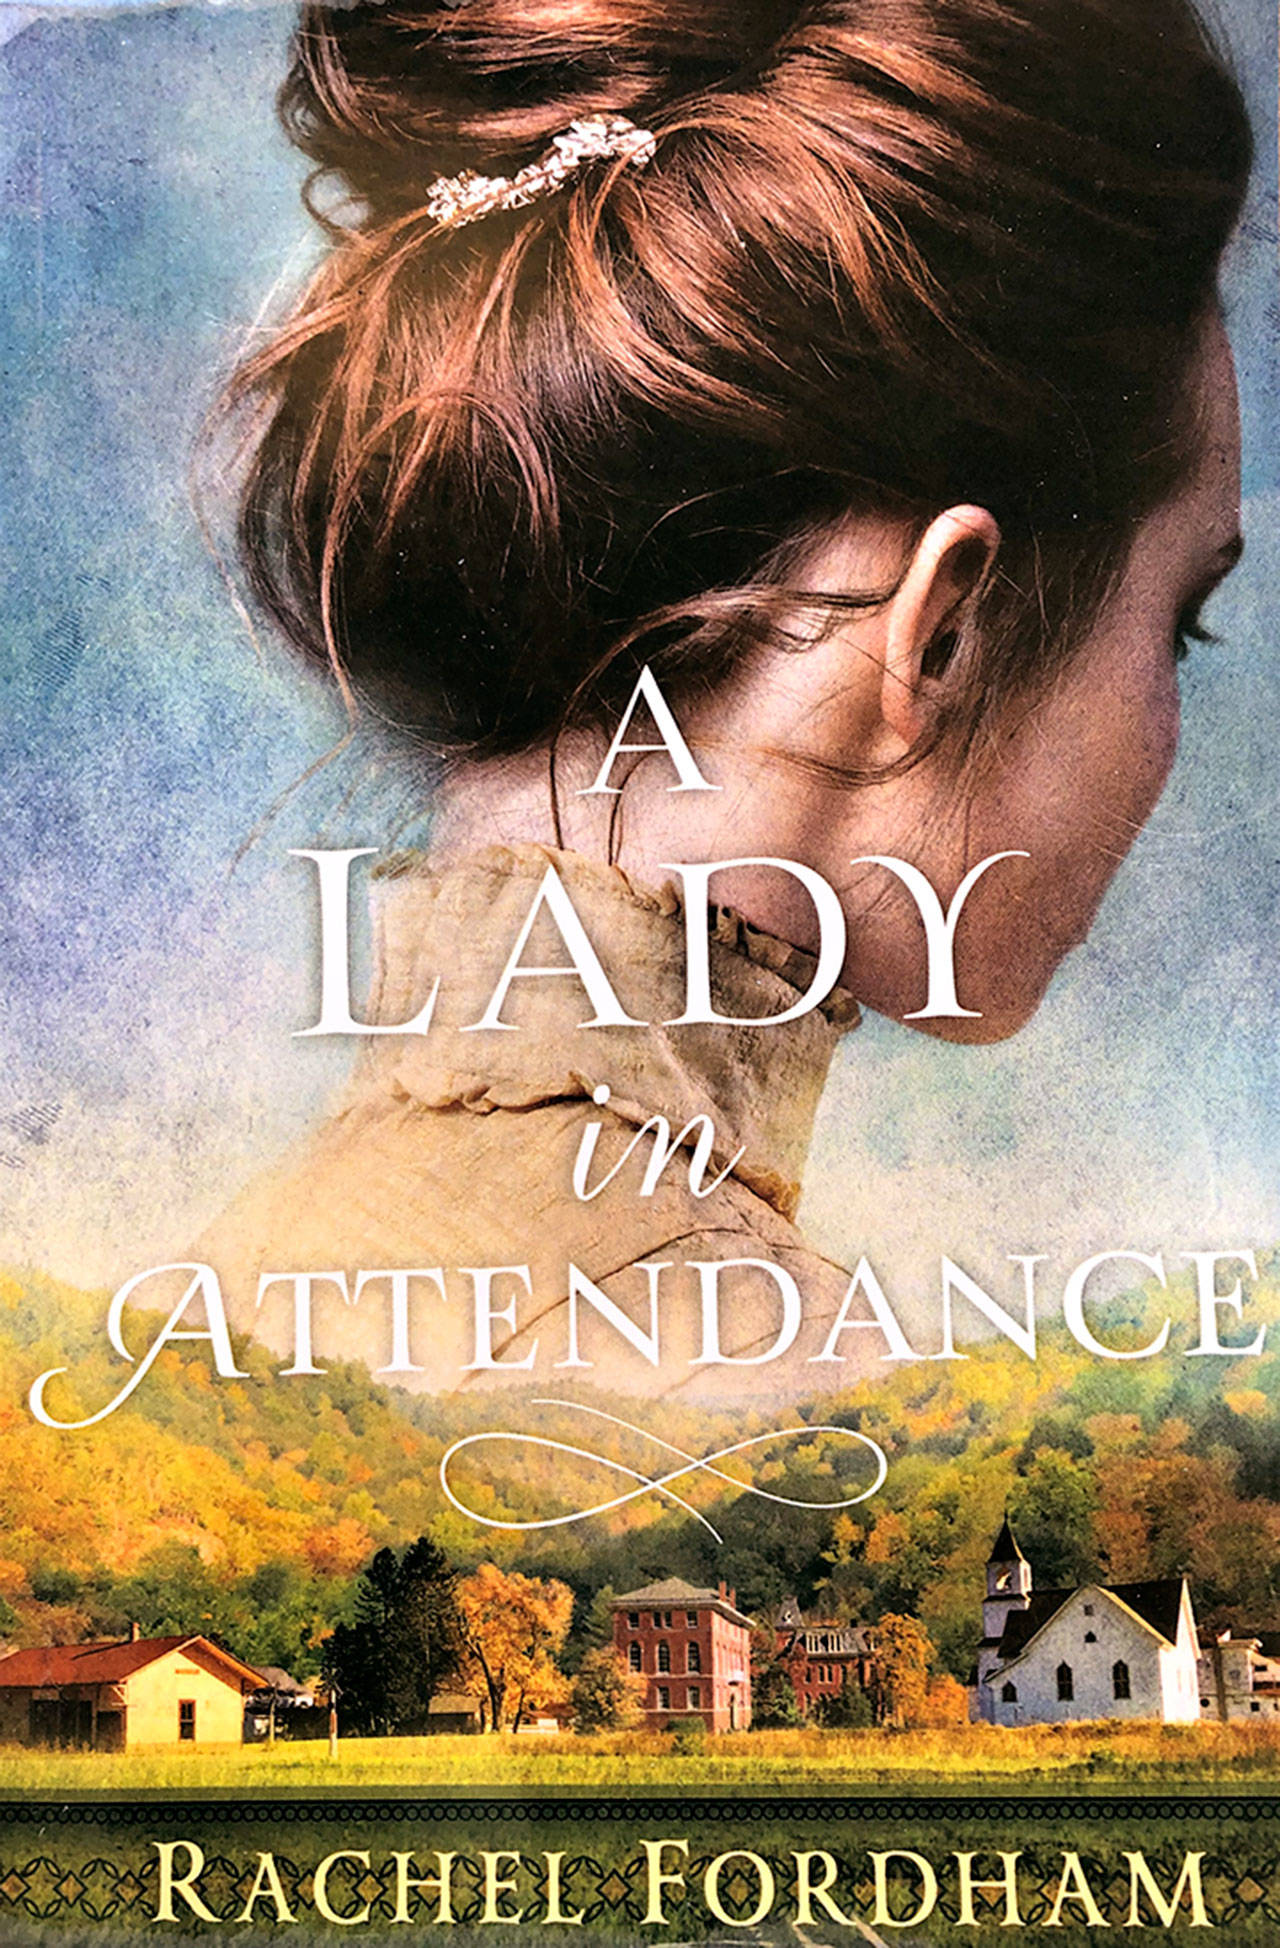 """Novelist Rachel Fordham of Marrowstone Island has published a historical saga, """"A Lady in Attendance,"""" about a 19th century woman who starts a new life after time in a reformatory. (Diane Urbani de la Paz/Peninsula Daily News)"""